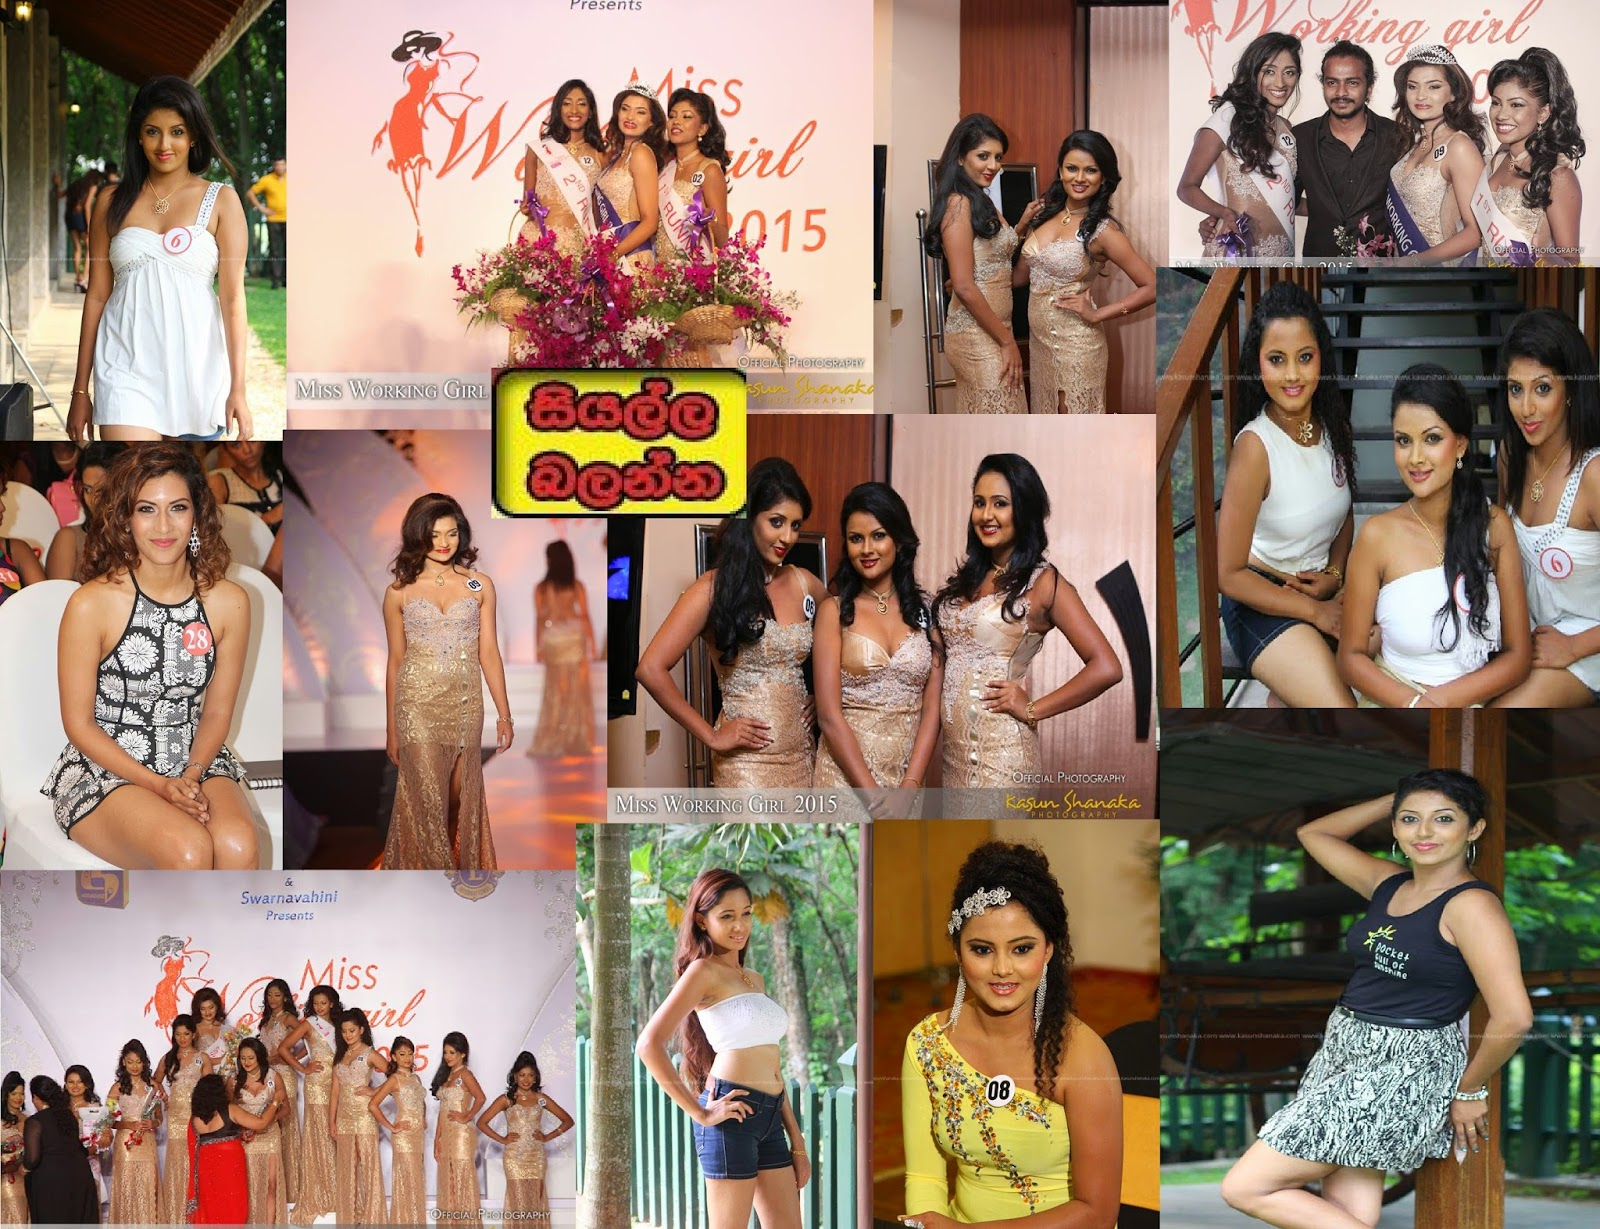 http://picture.gossiplankahotnews.com/2015/04/miss-working-girl-2015-final.html